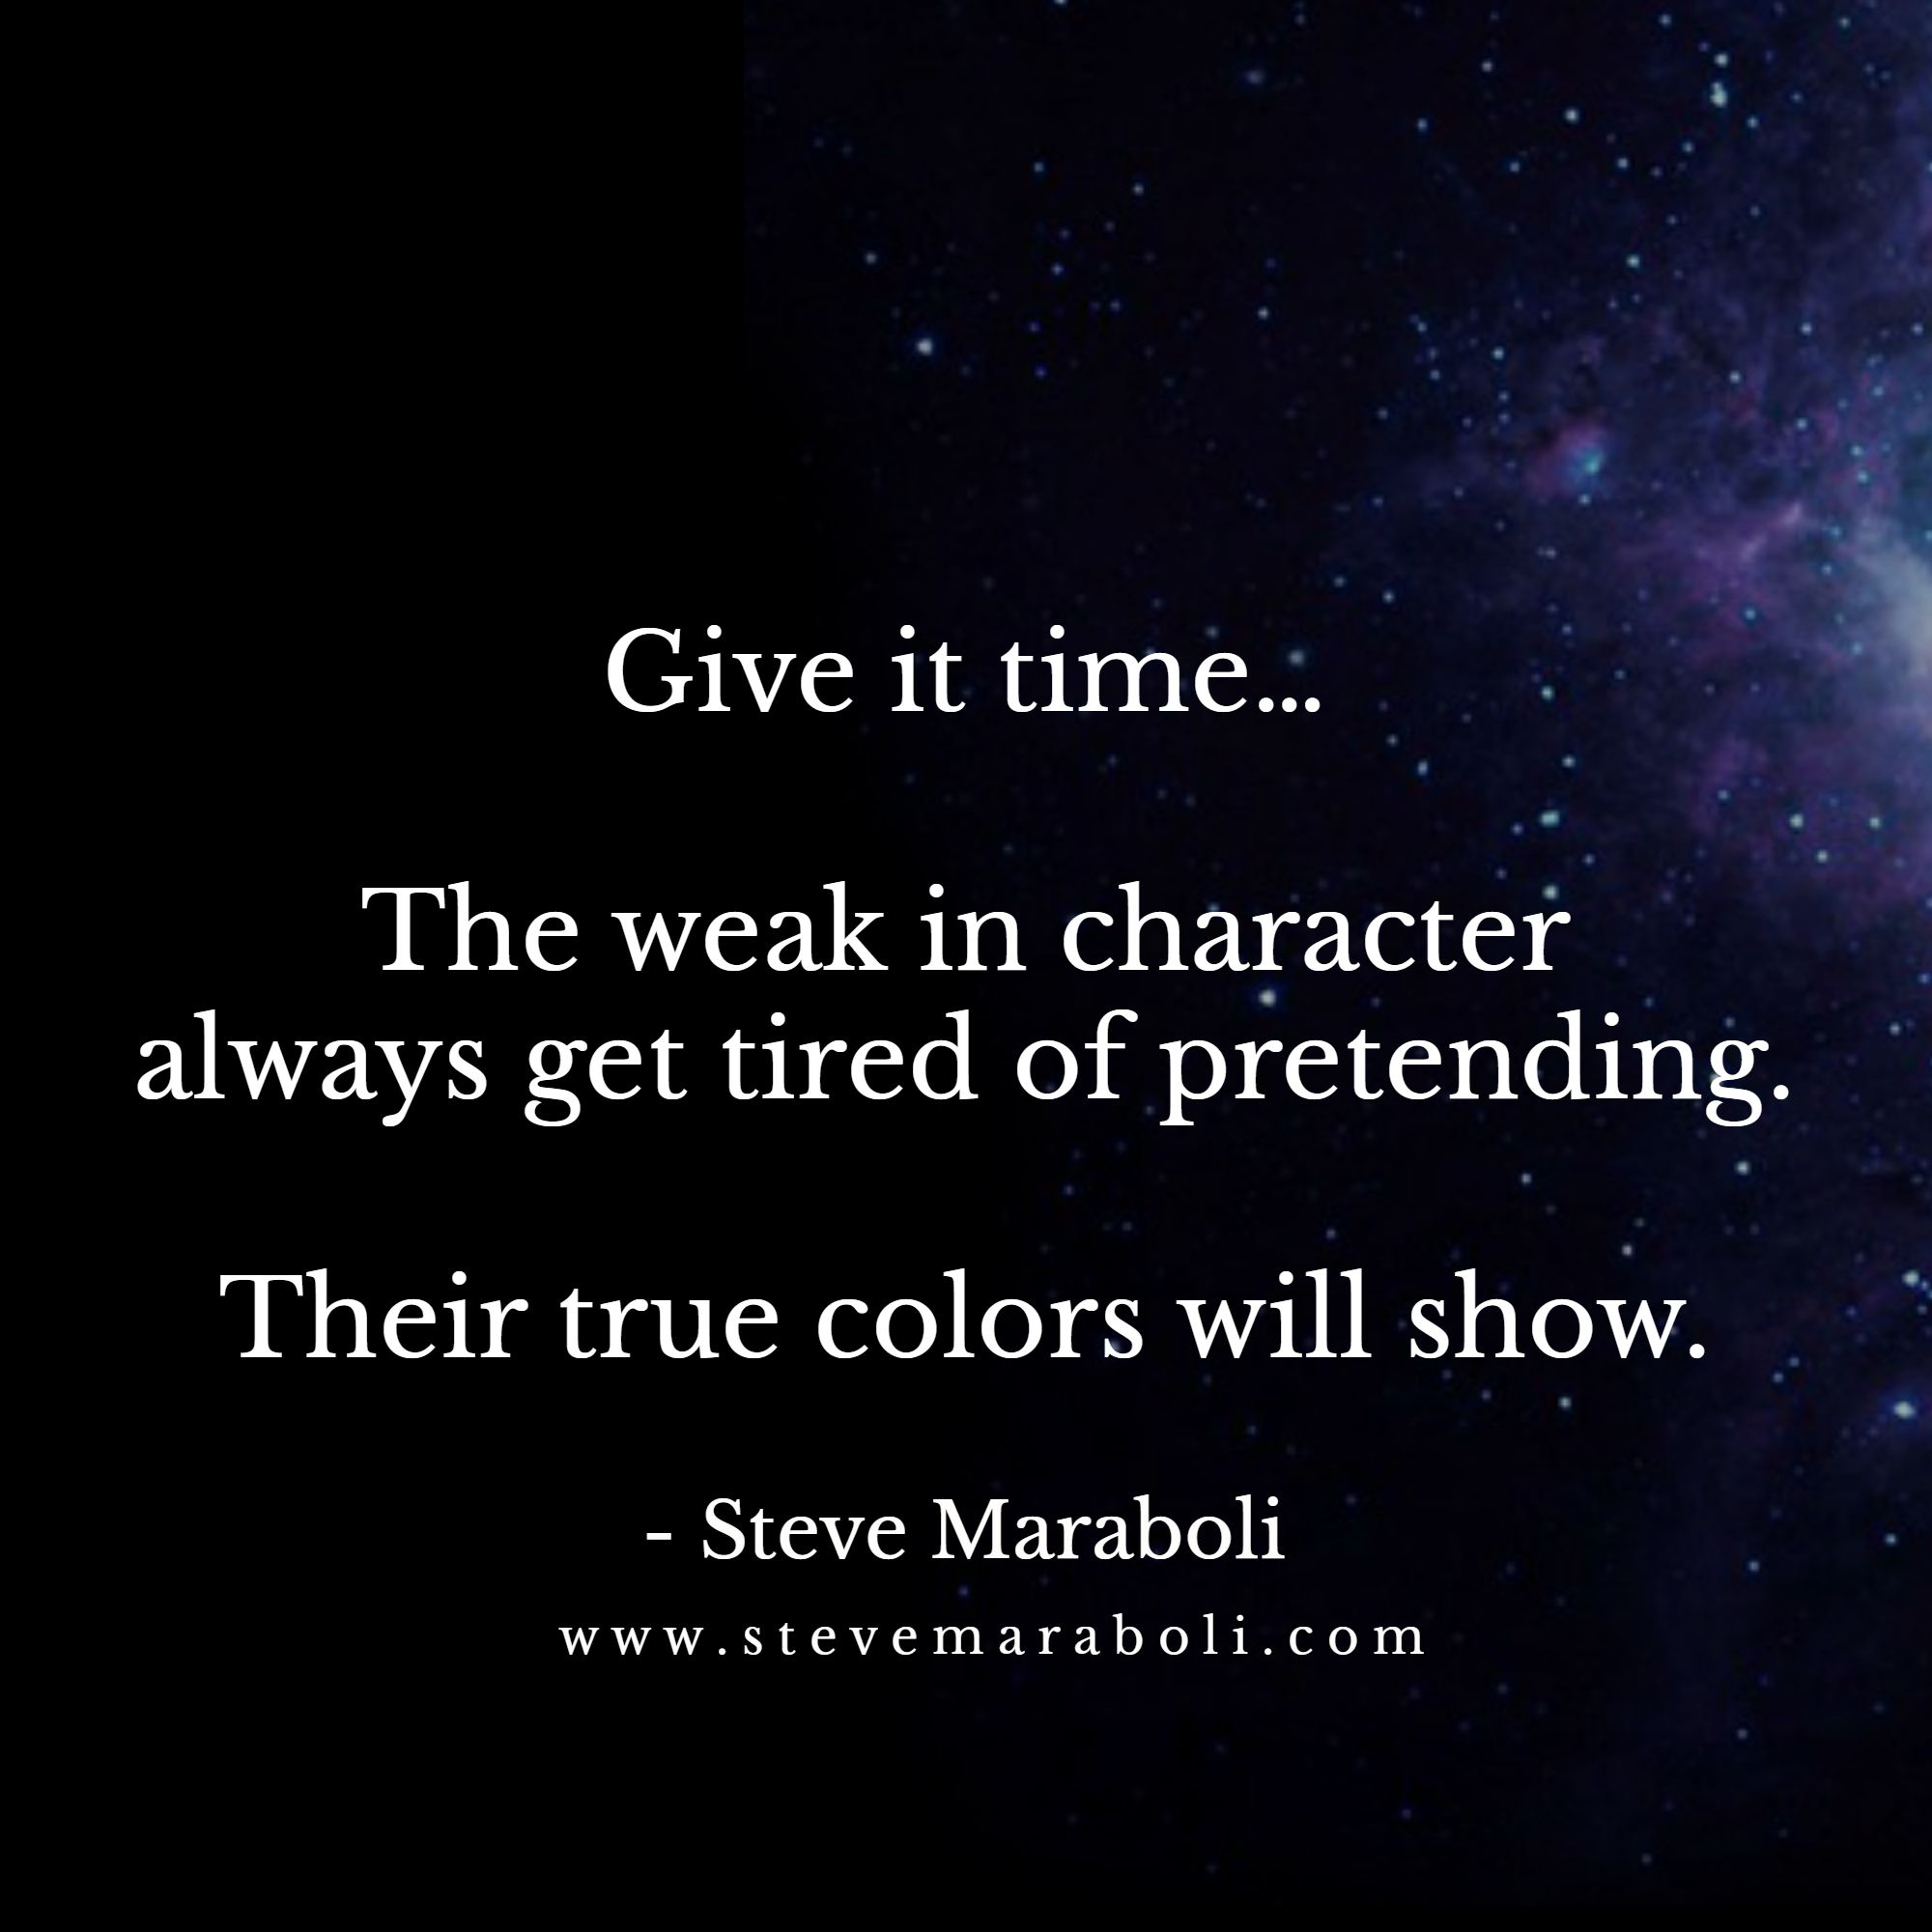 Give It Time The Weak In Character Always Get Tired Of Pretending